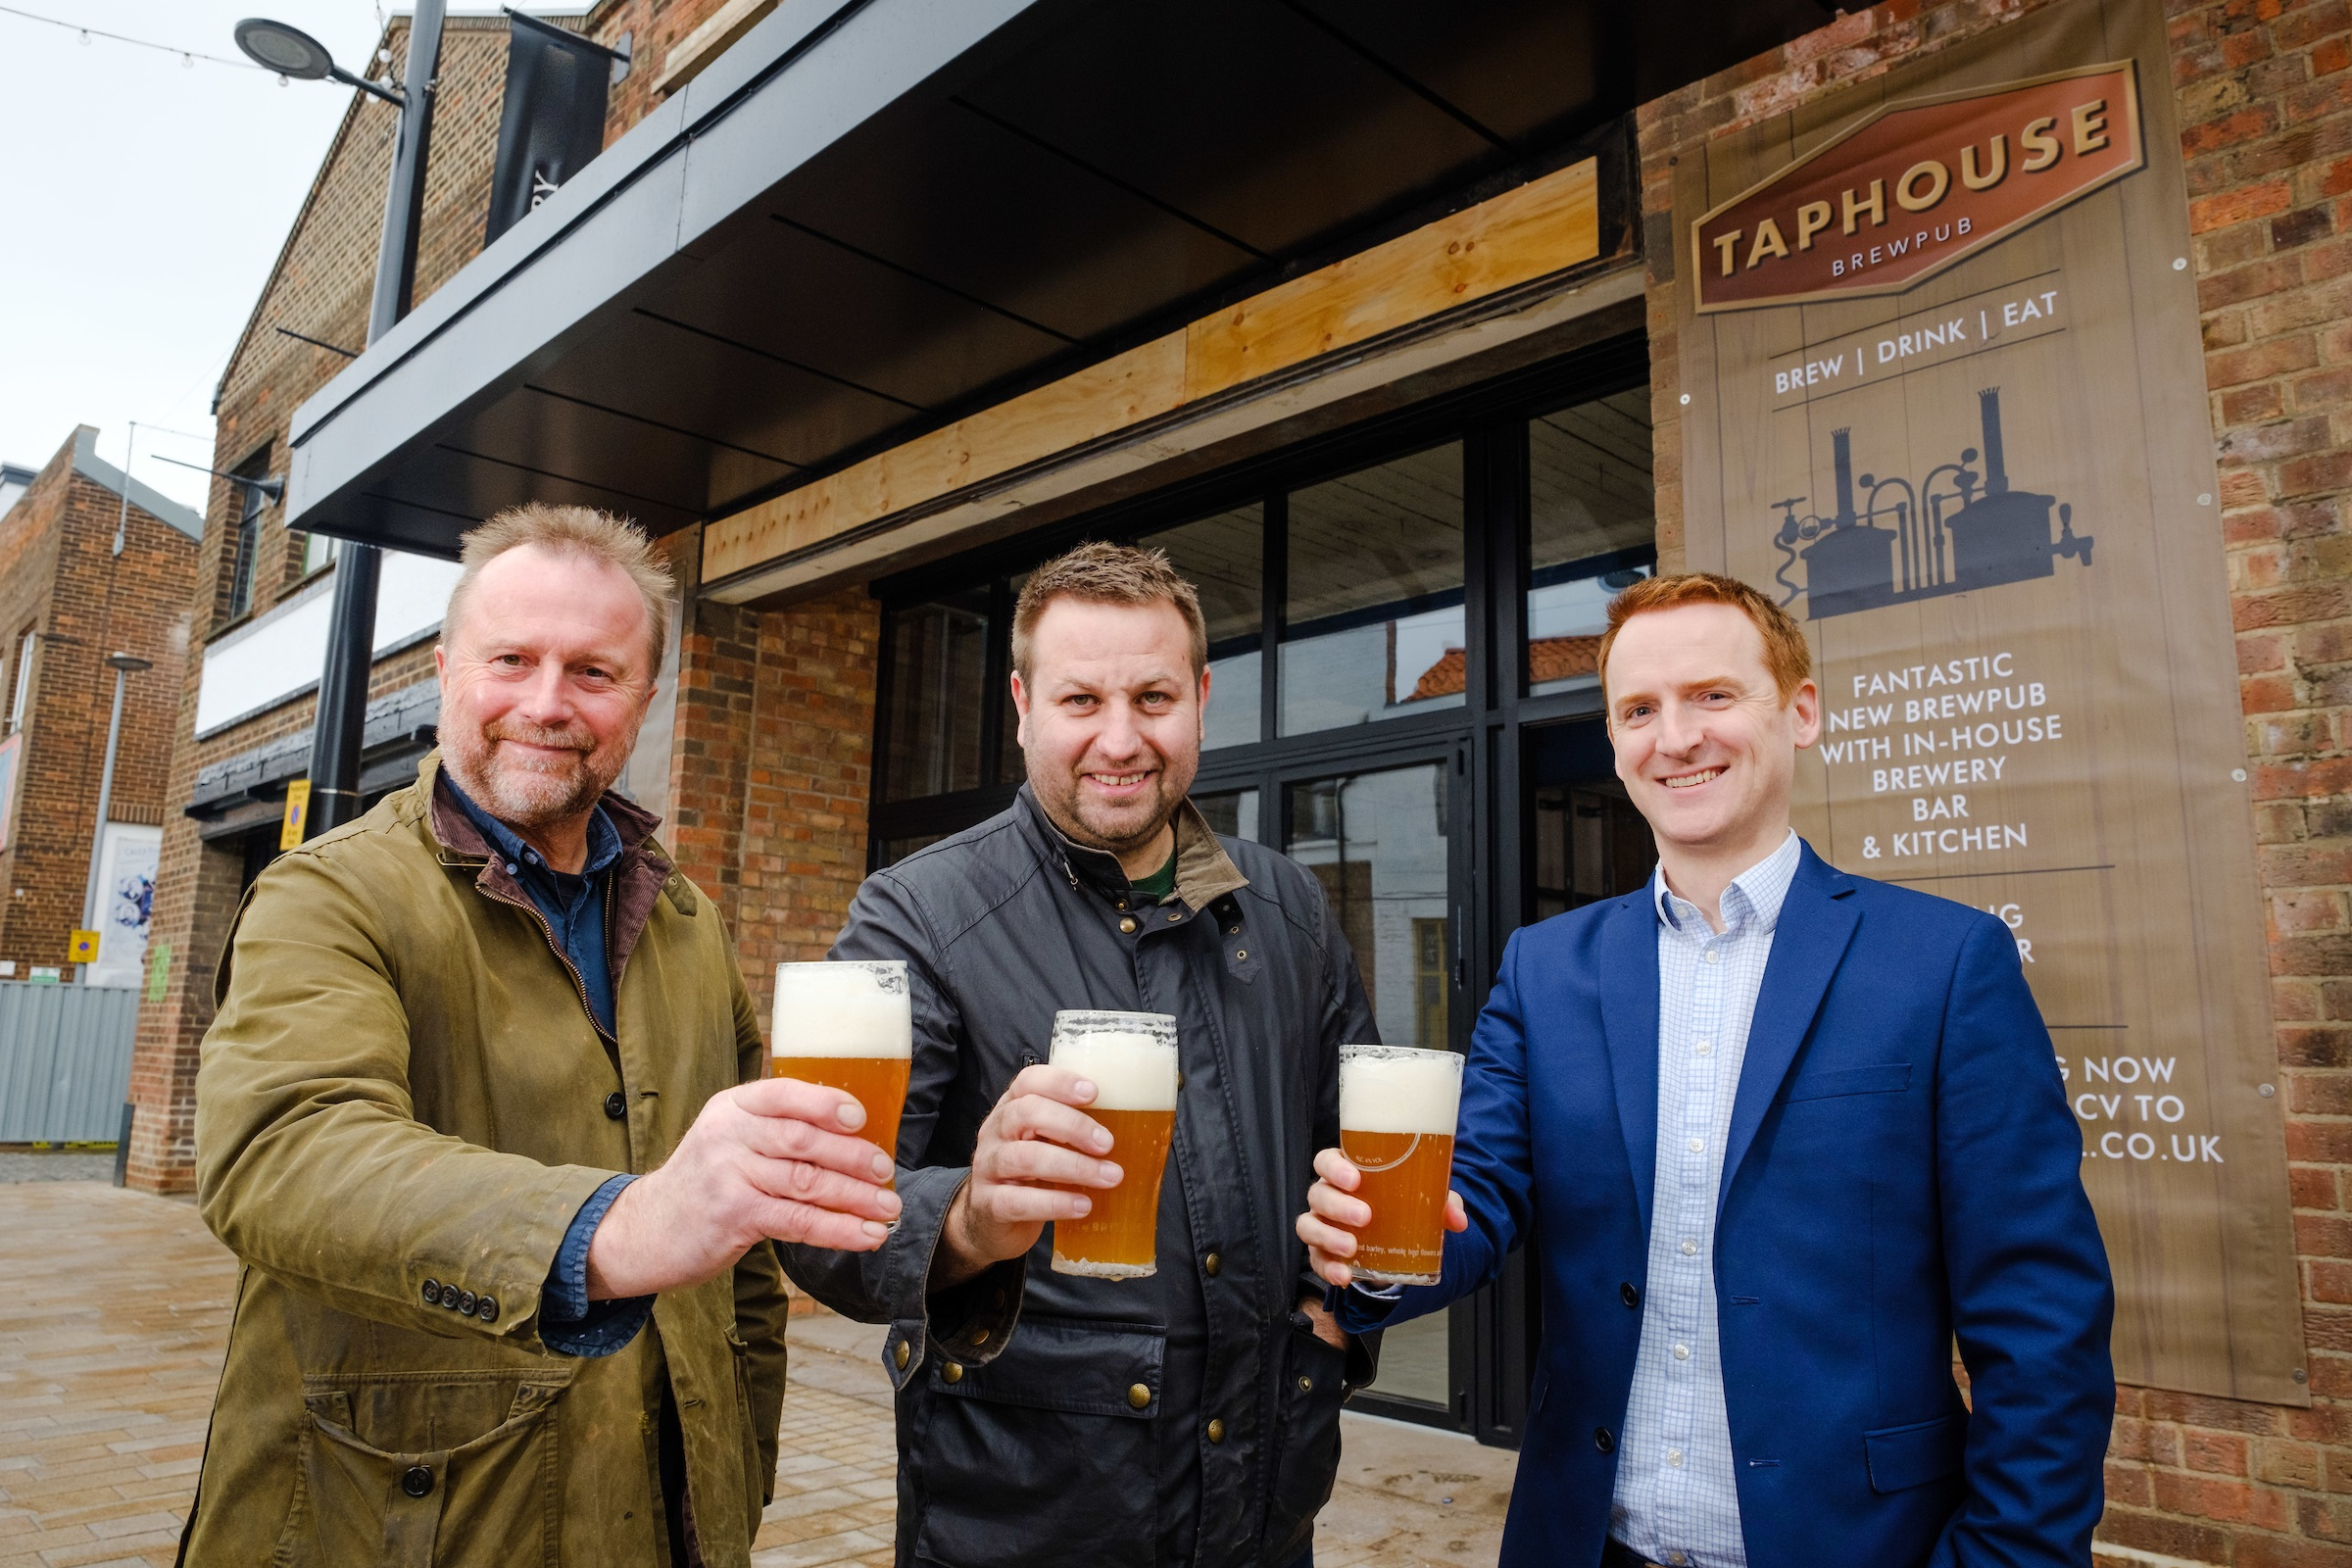 Taphouse Brewpub owners Guy Falkingham (left) and Lee Kirman (centre) with Tom Watson from Wykeland Beal.